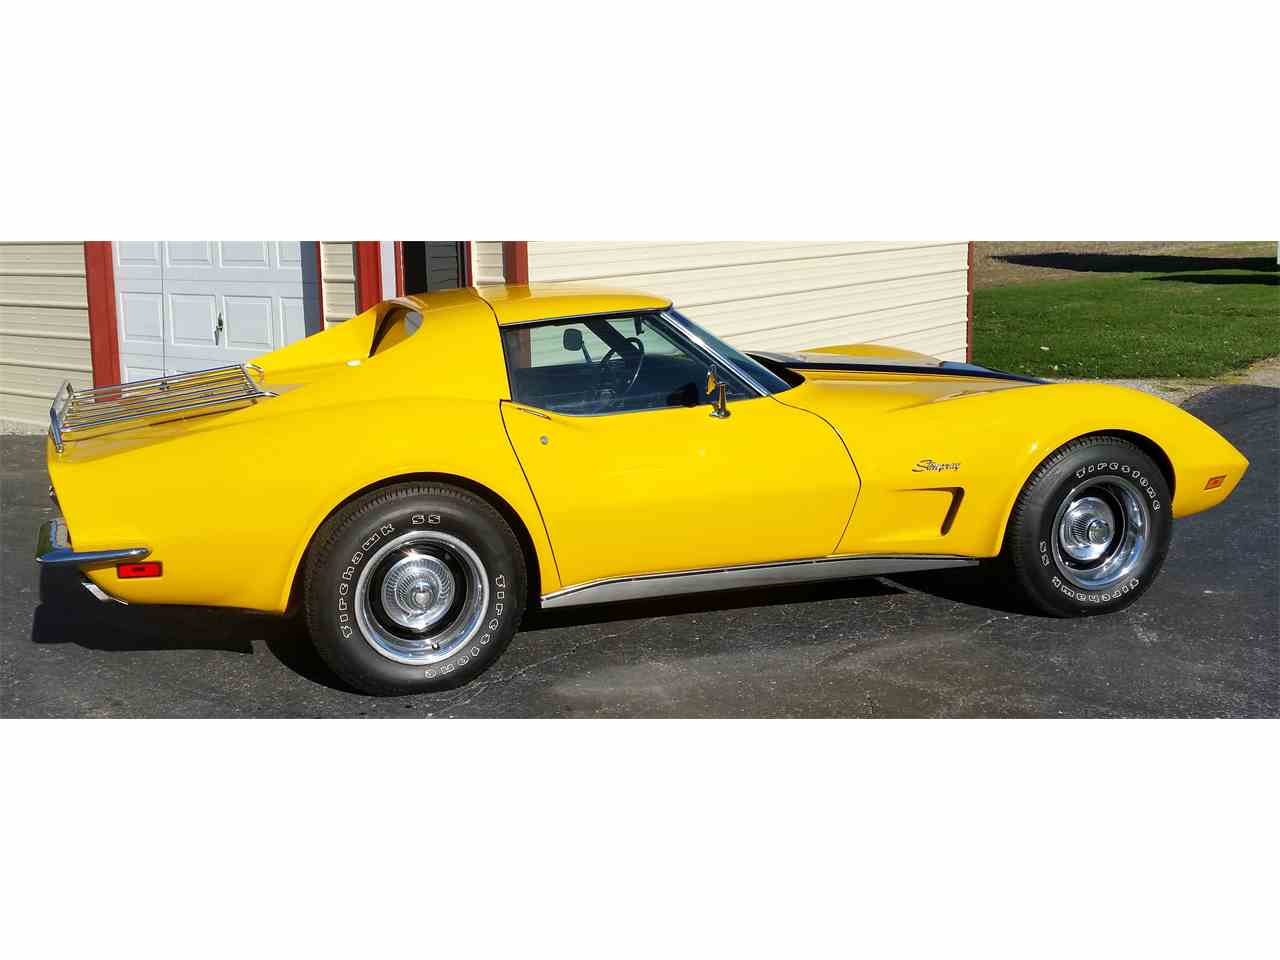 Picture of 1973 chevrolet corvette coupe exterior - Photo 6